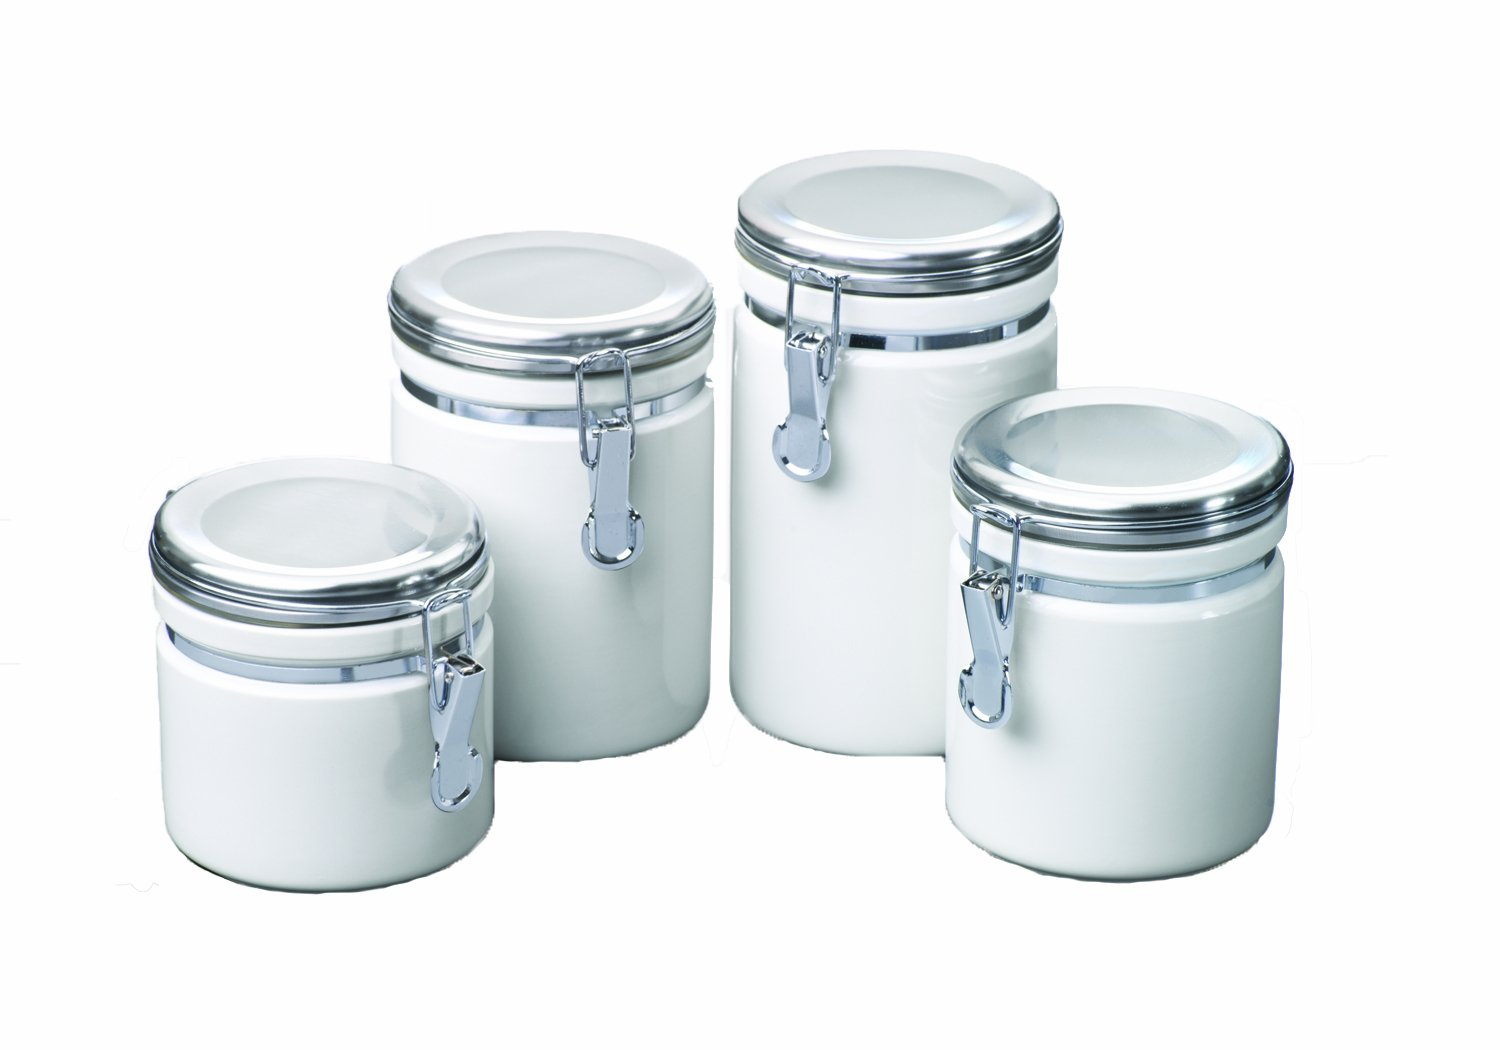 Amazon.com: Anchor Hocking 4-Piece Ceramic Canister Set with Clamp ...